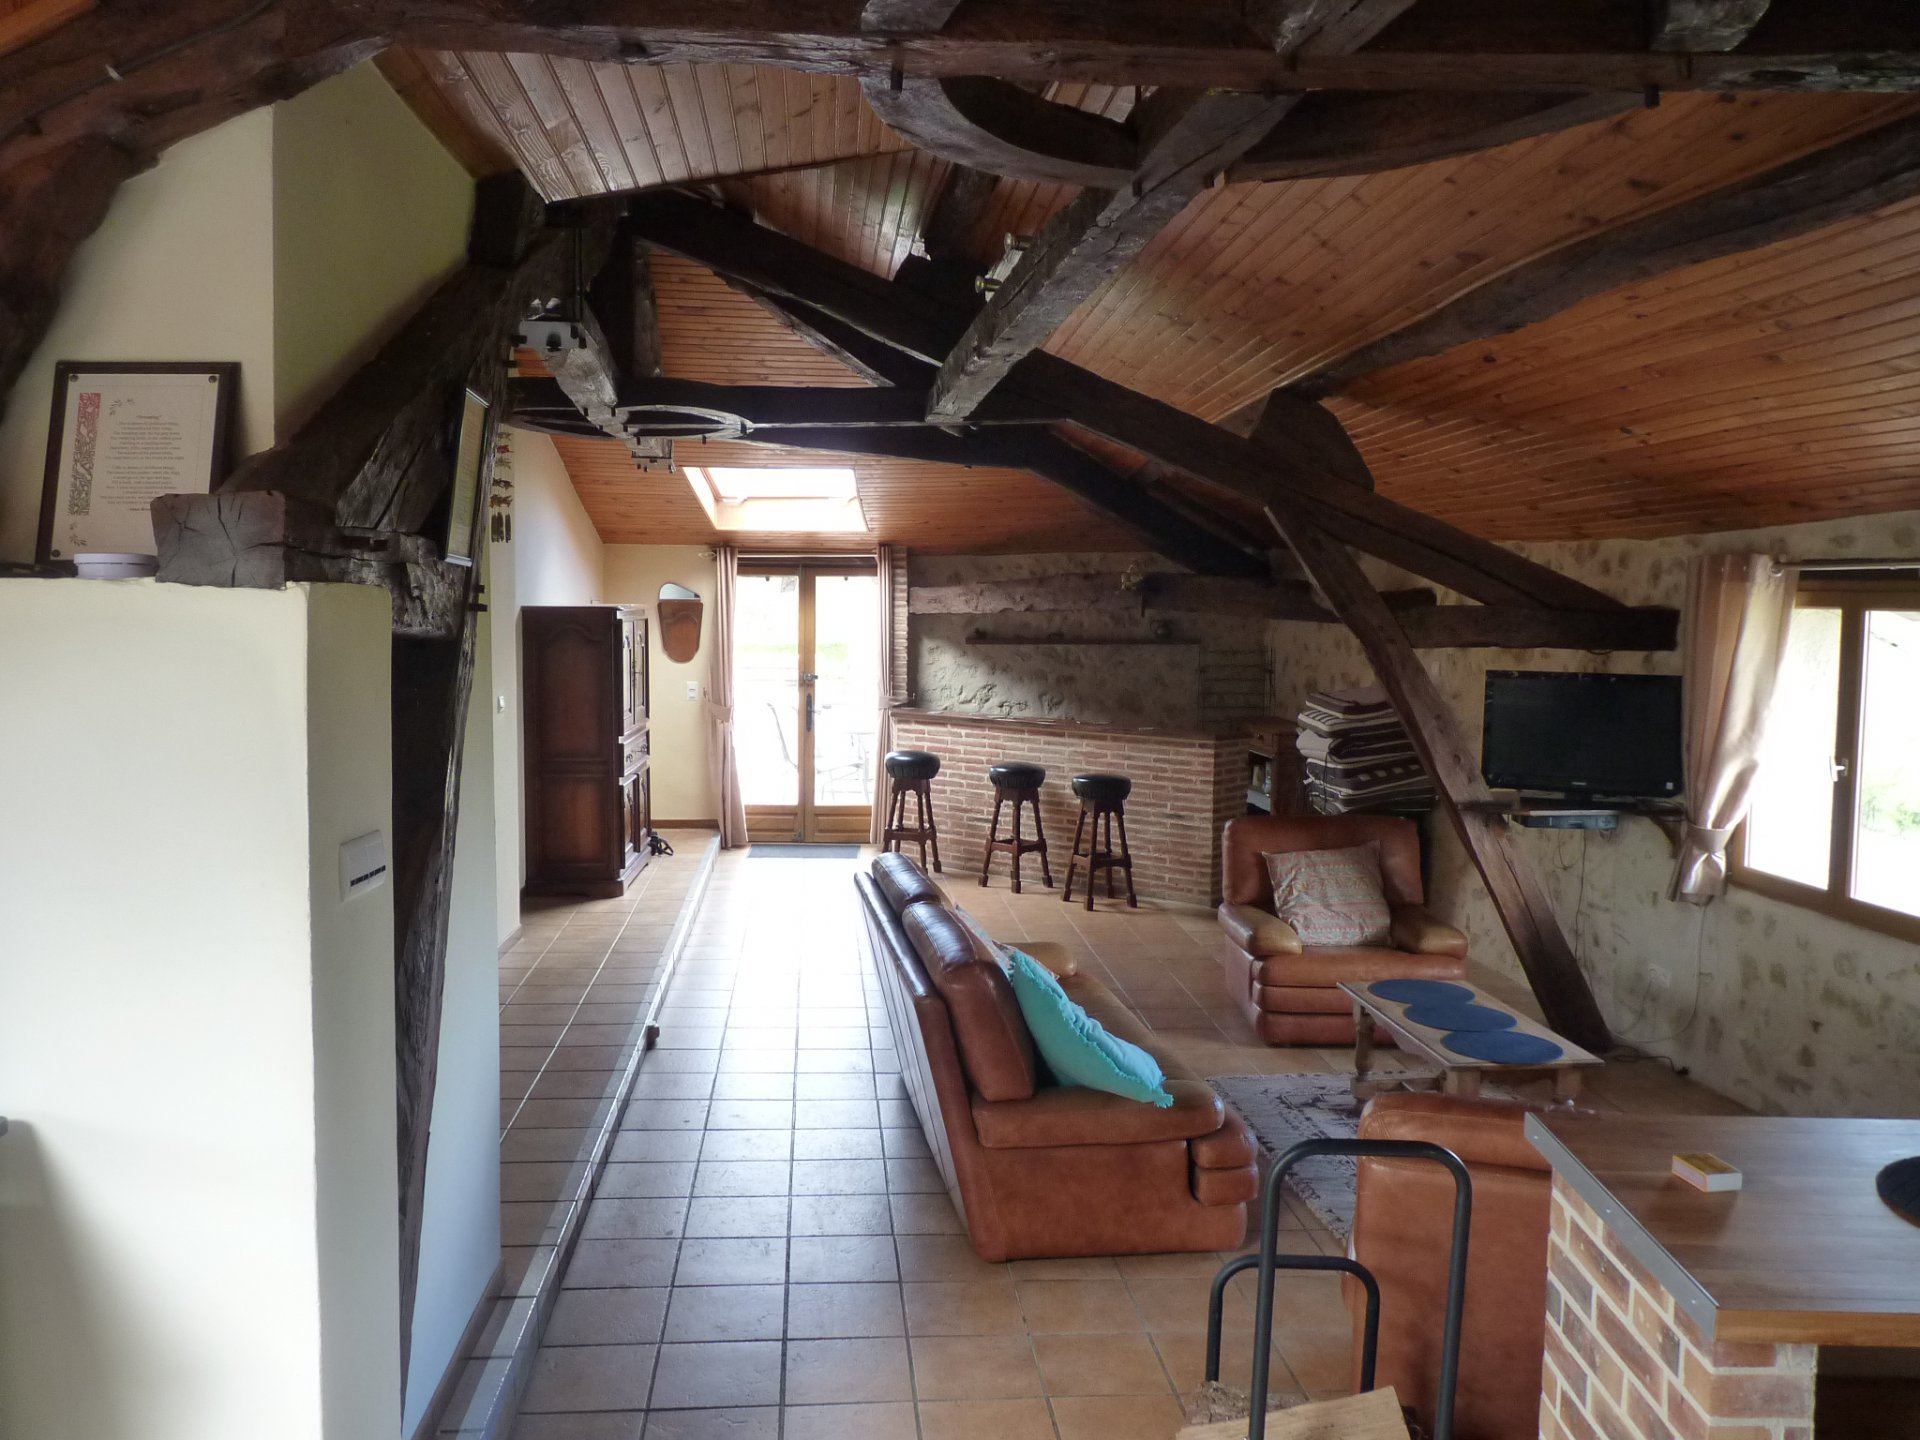 Saint Frajou Flat 3 rooms with acces to the swimming pool and garden